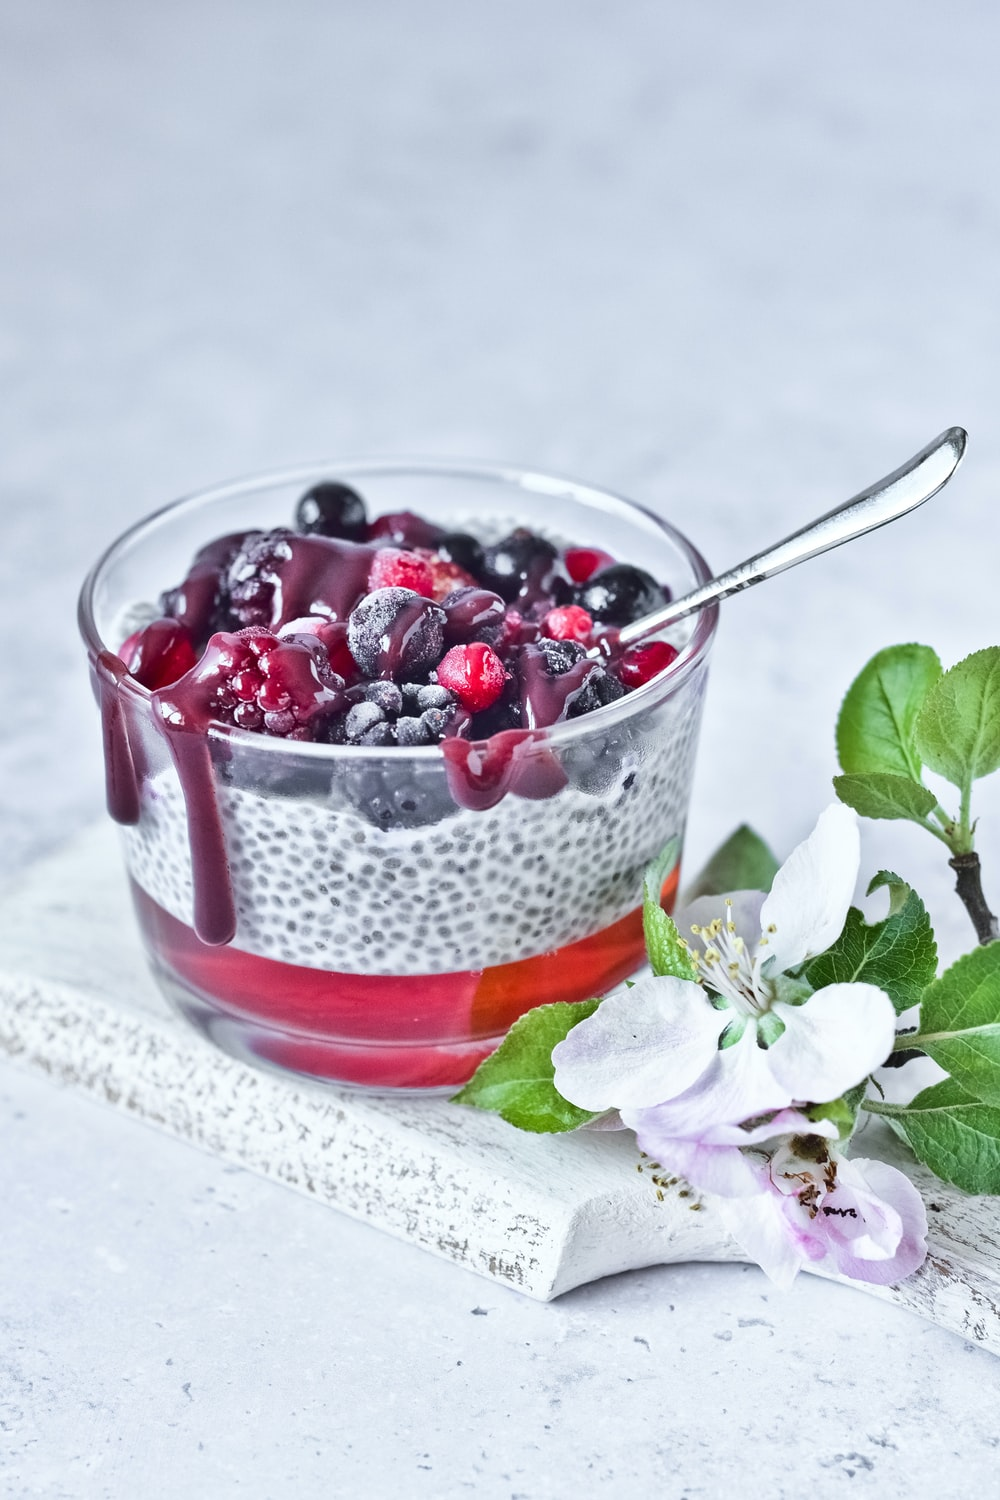 strawberry and blackberry in clear glass cup